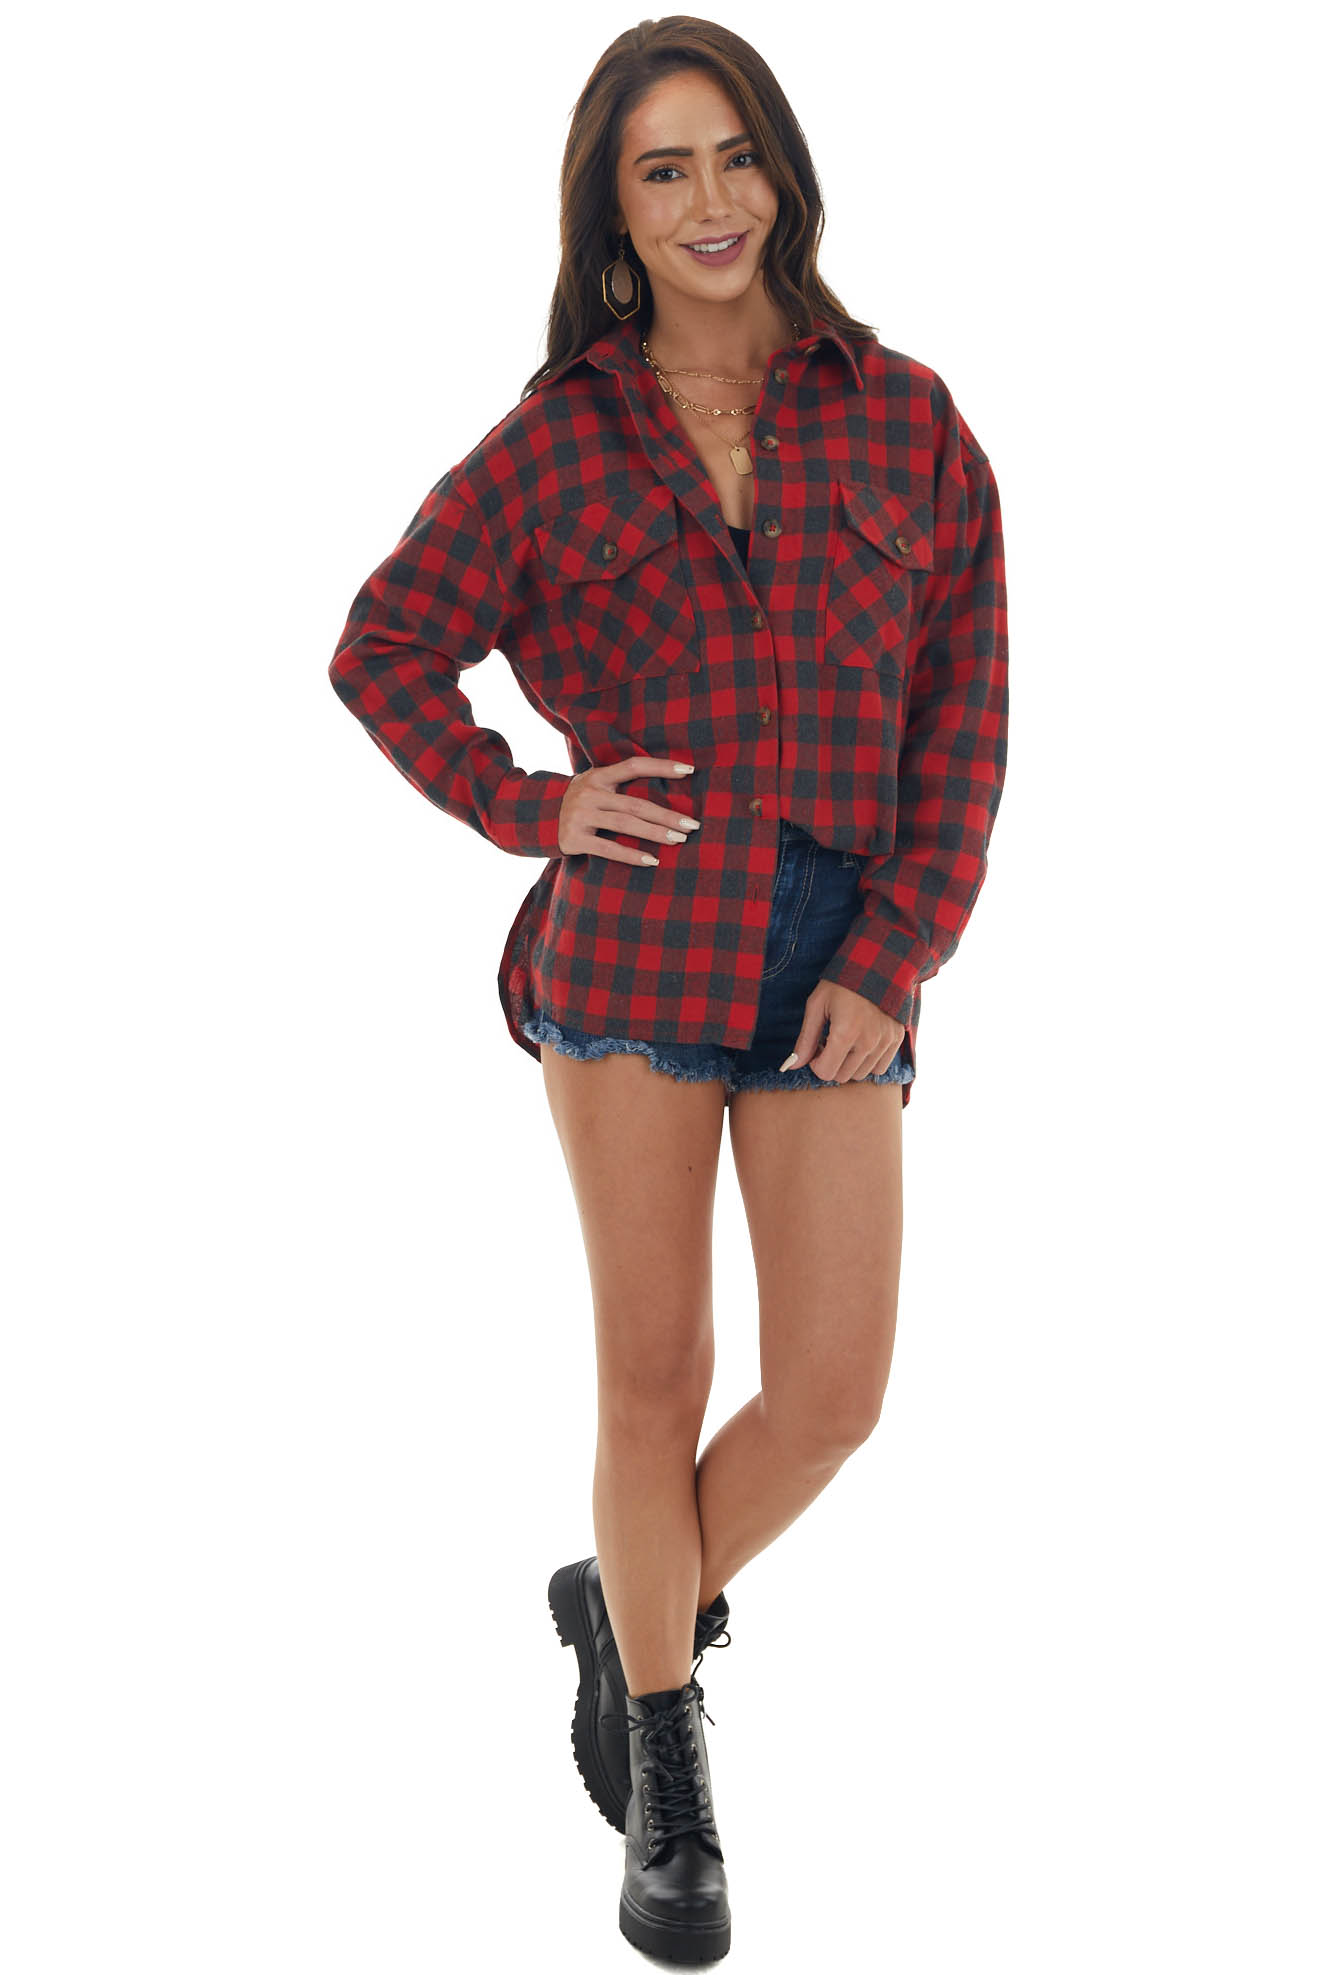 Candy Apple Red Plaid Button Up Top